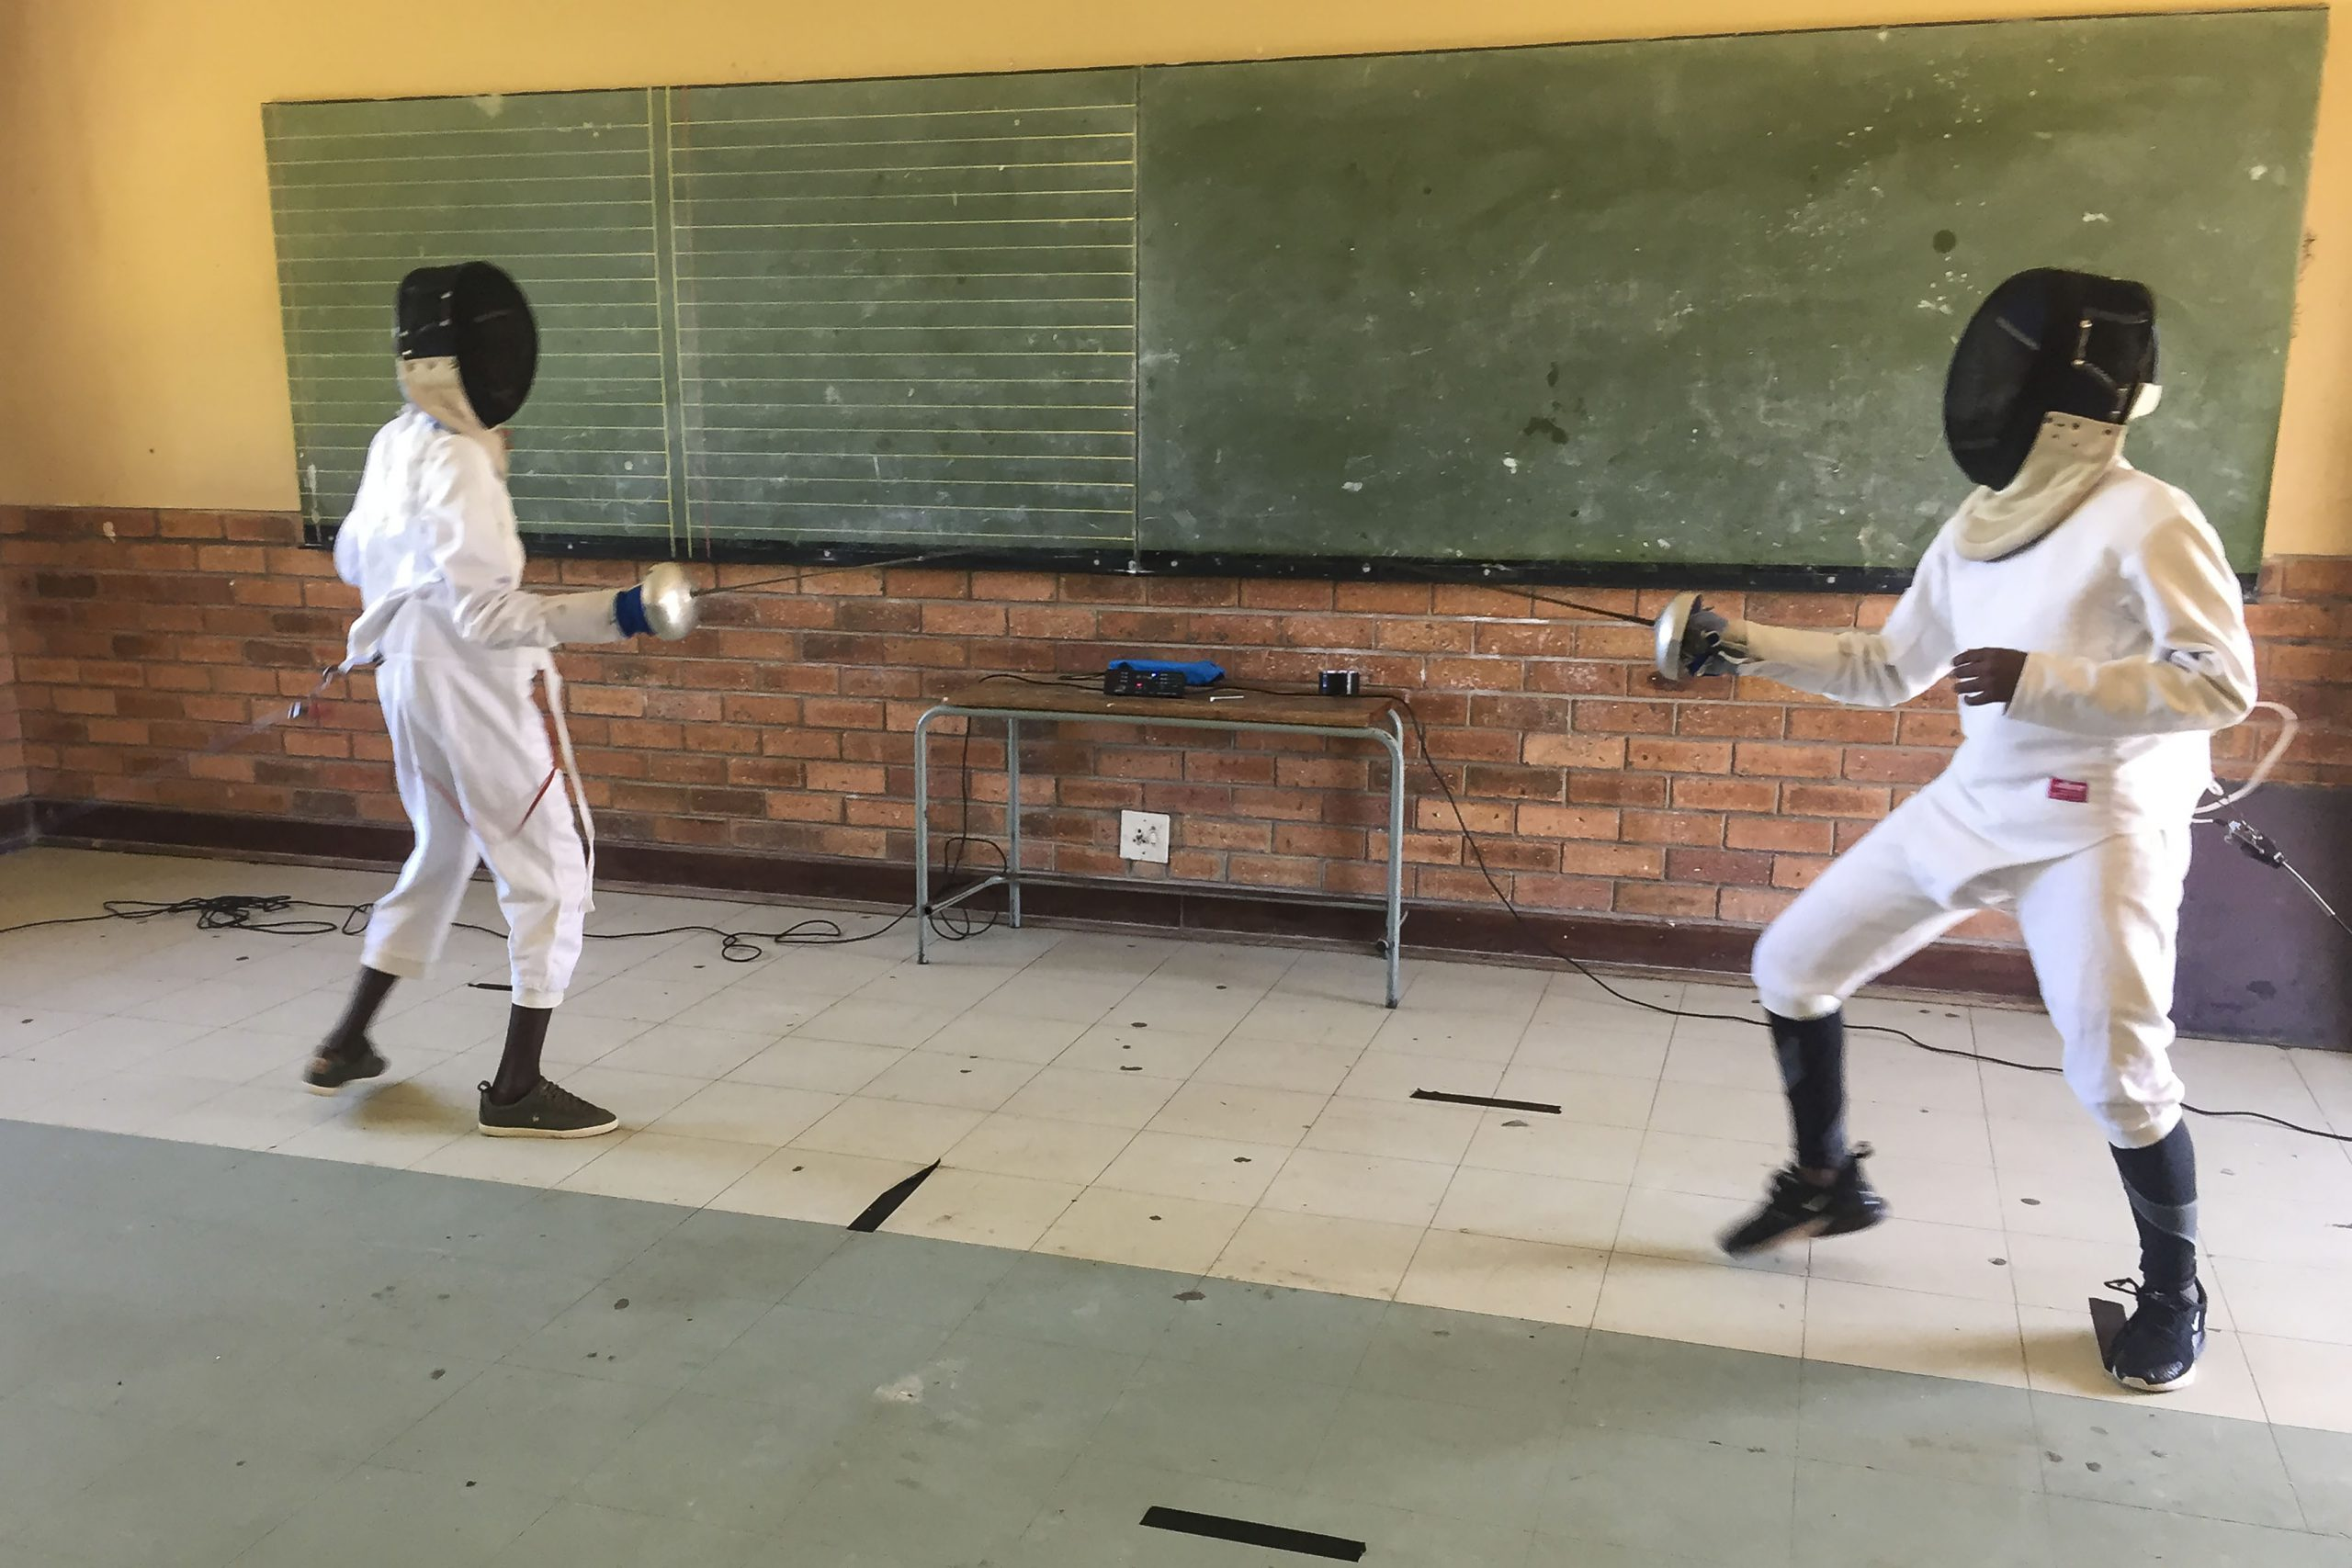 9 February 2020: The team members are training hard for the championships in Bloemfontein in July. (Photograph by Anna Majavu)